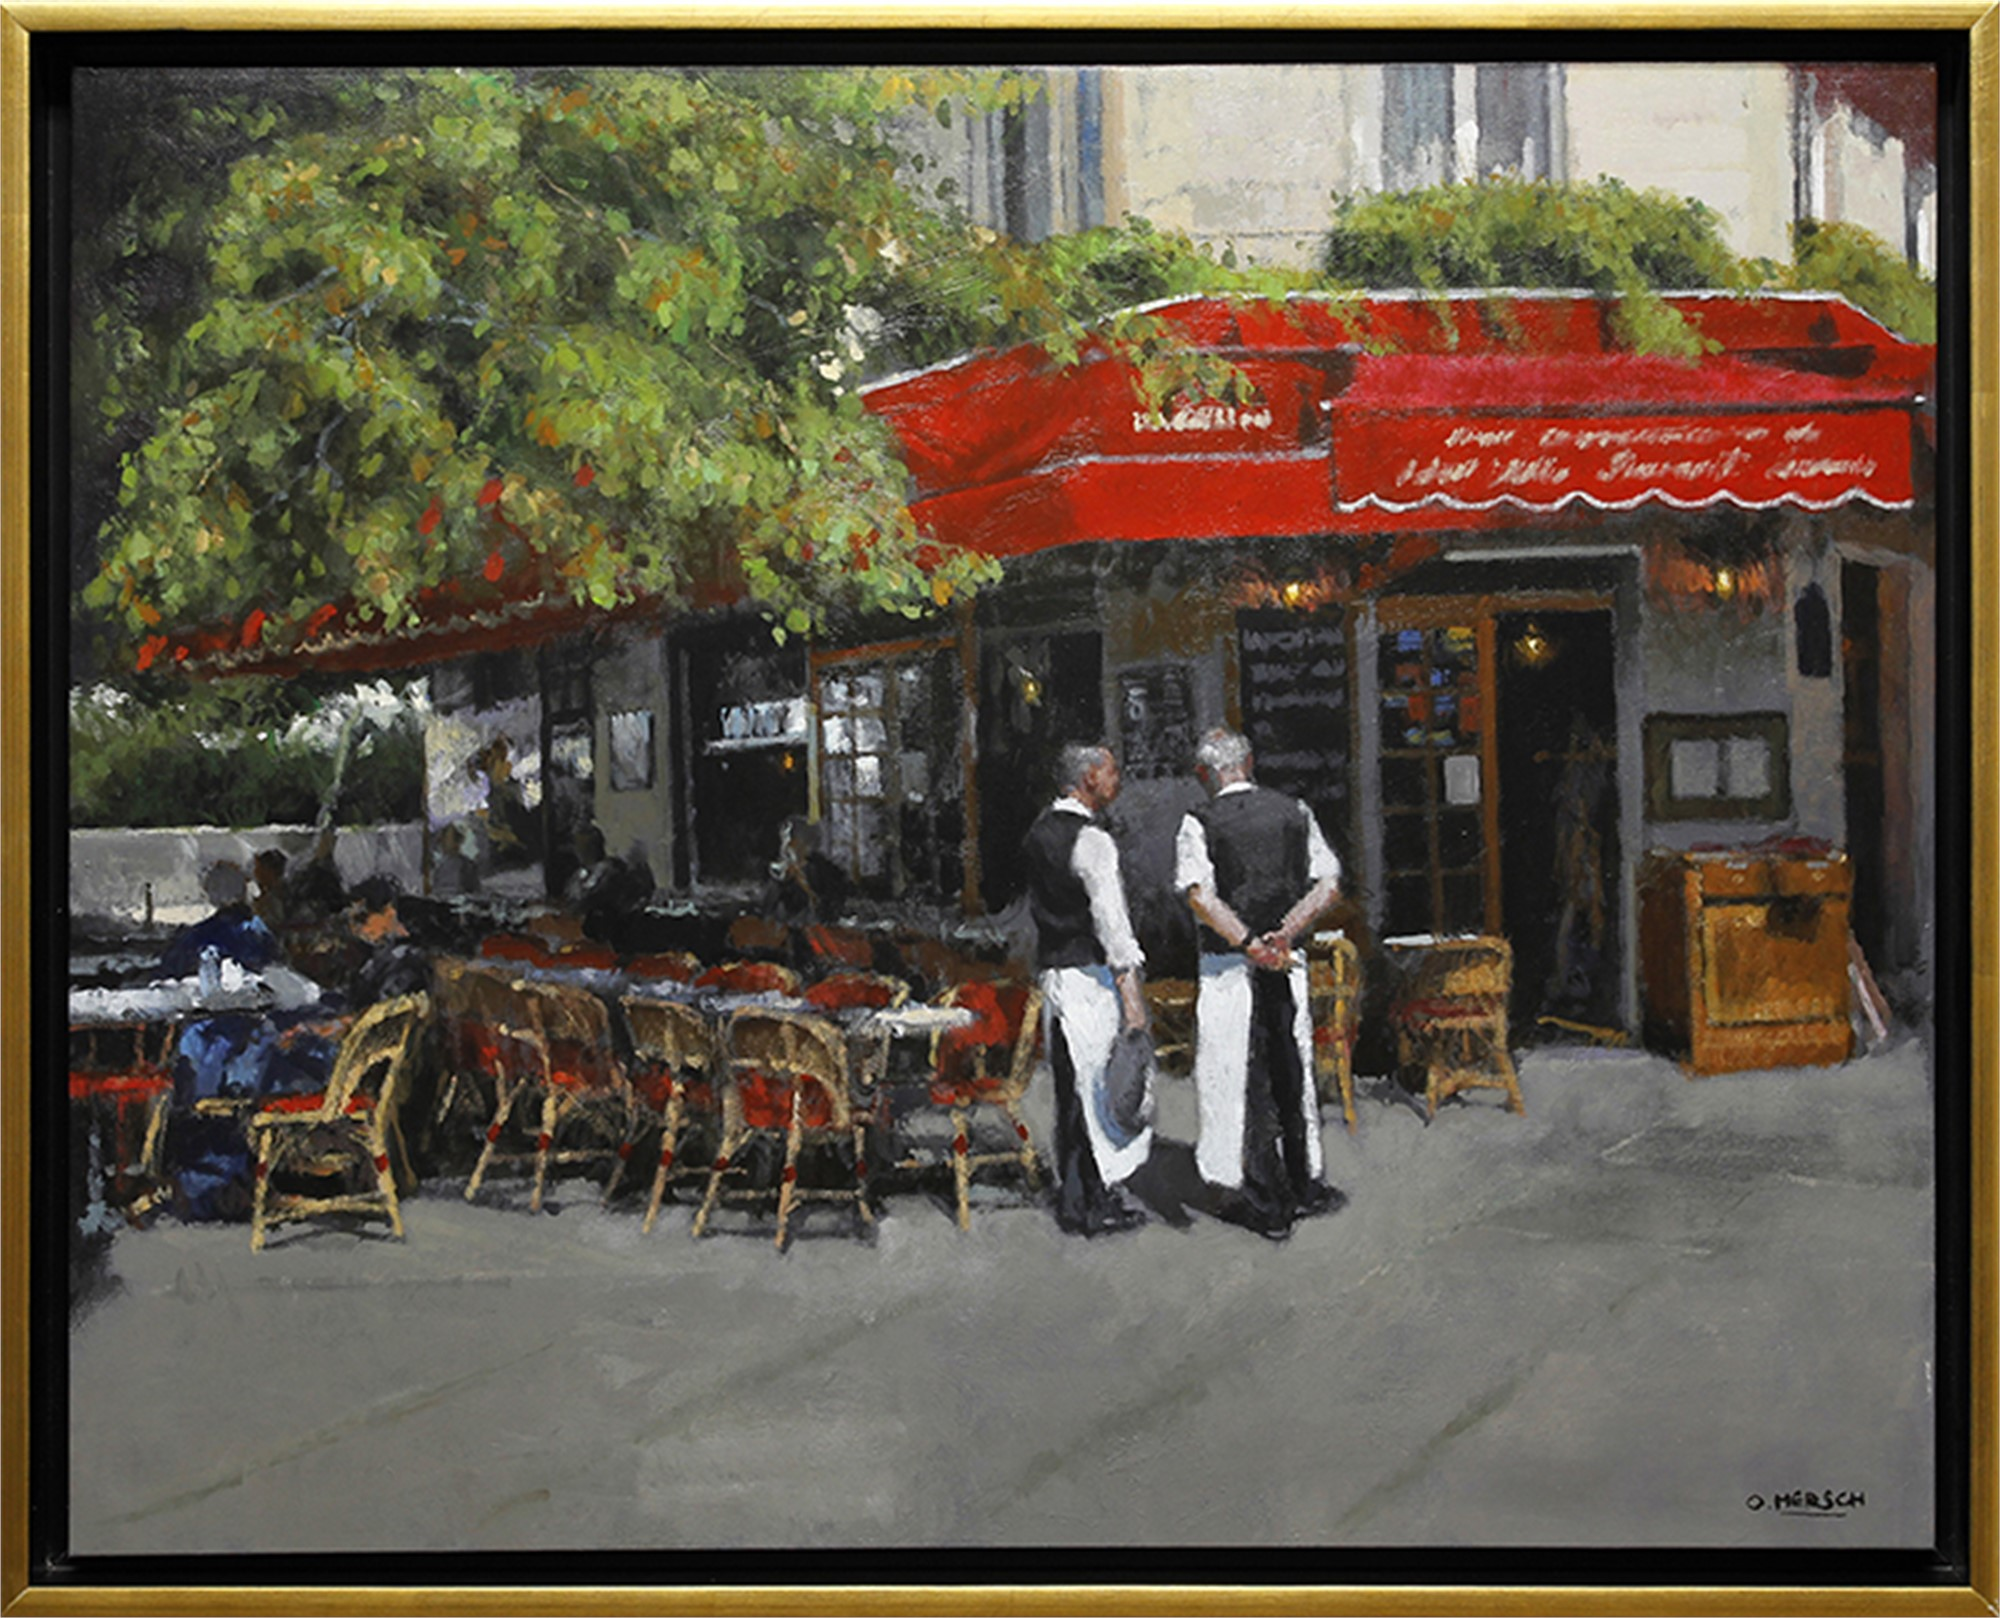 Cafe in Paris by Oscar Mersch